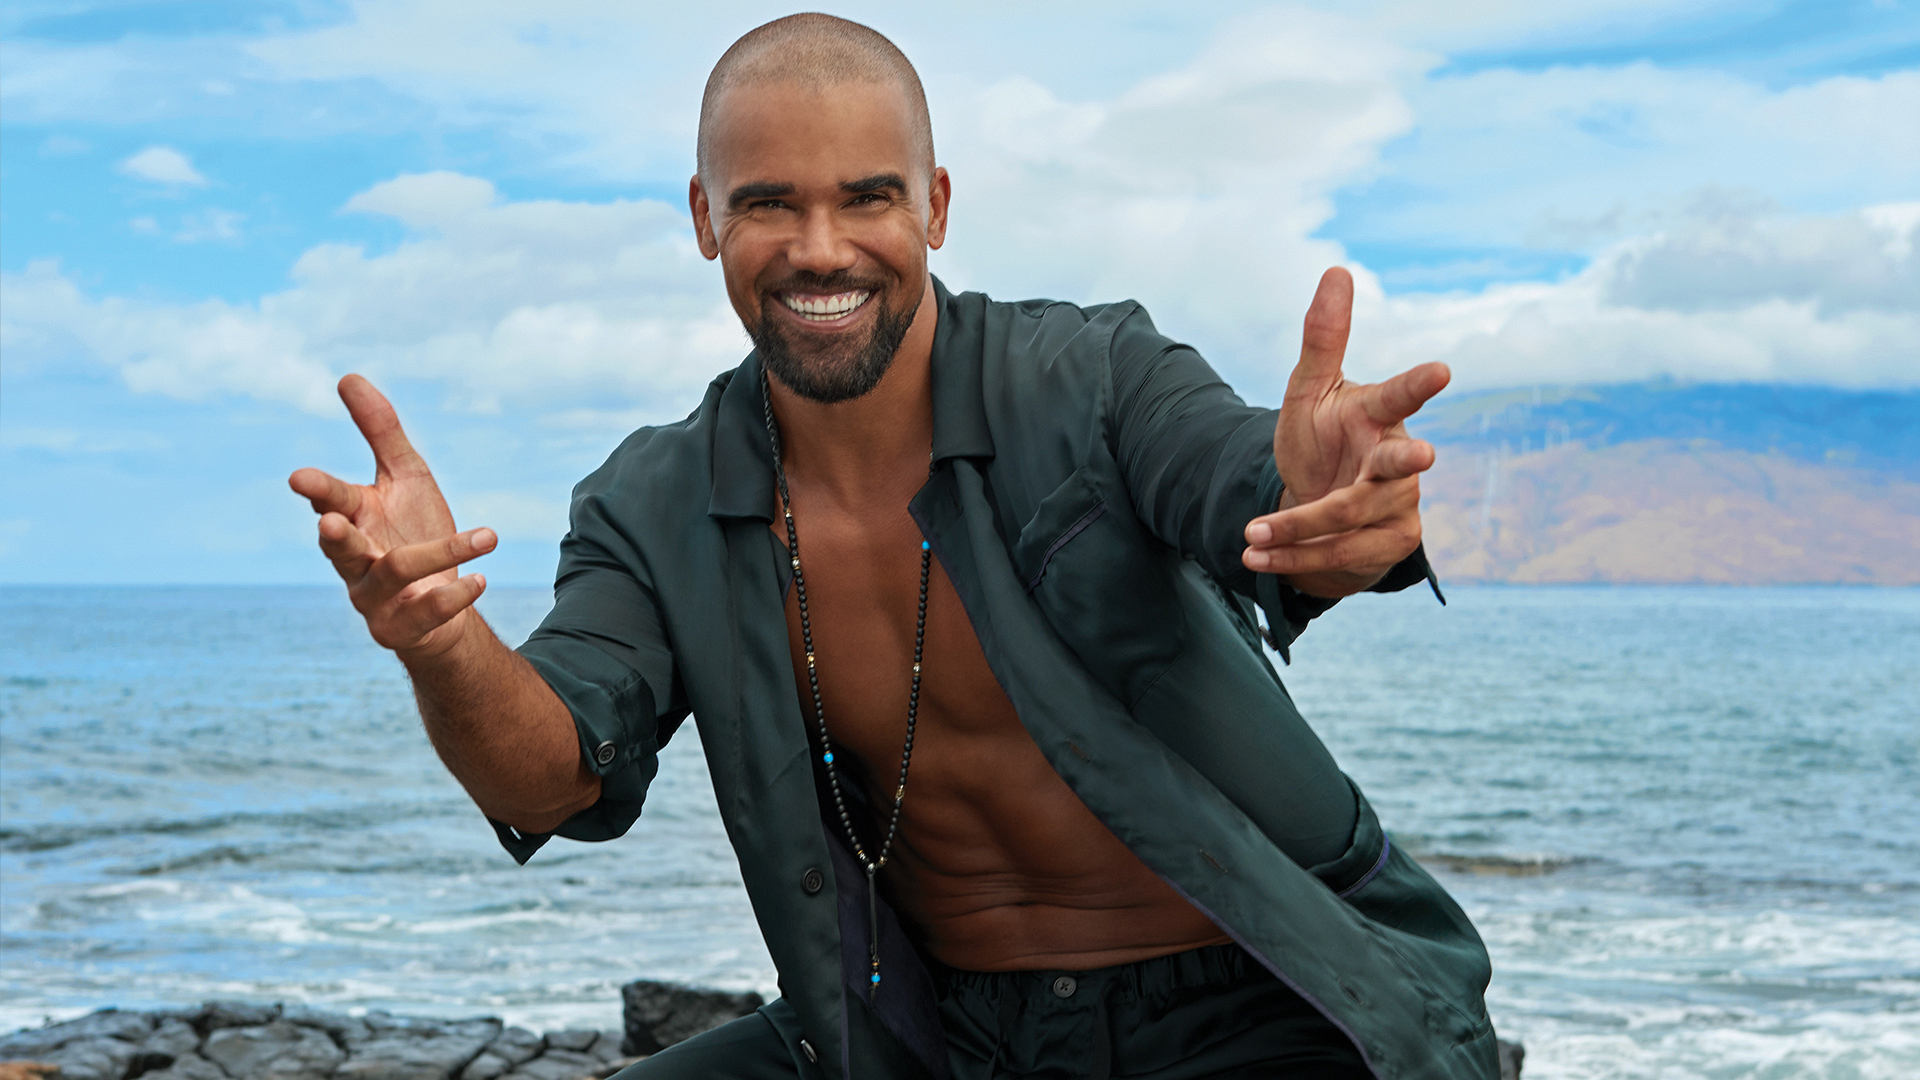 See why S.W.A.T. star Shemar Moore makes us S.W.O.O.N. in these exclusive, never-before-seen photos.